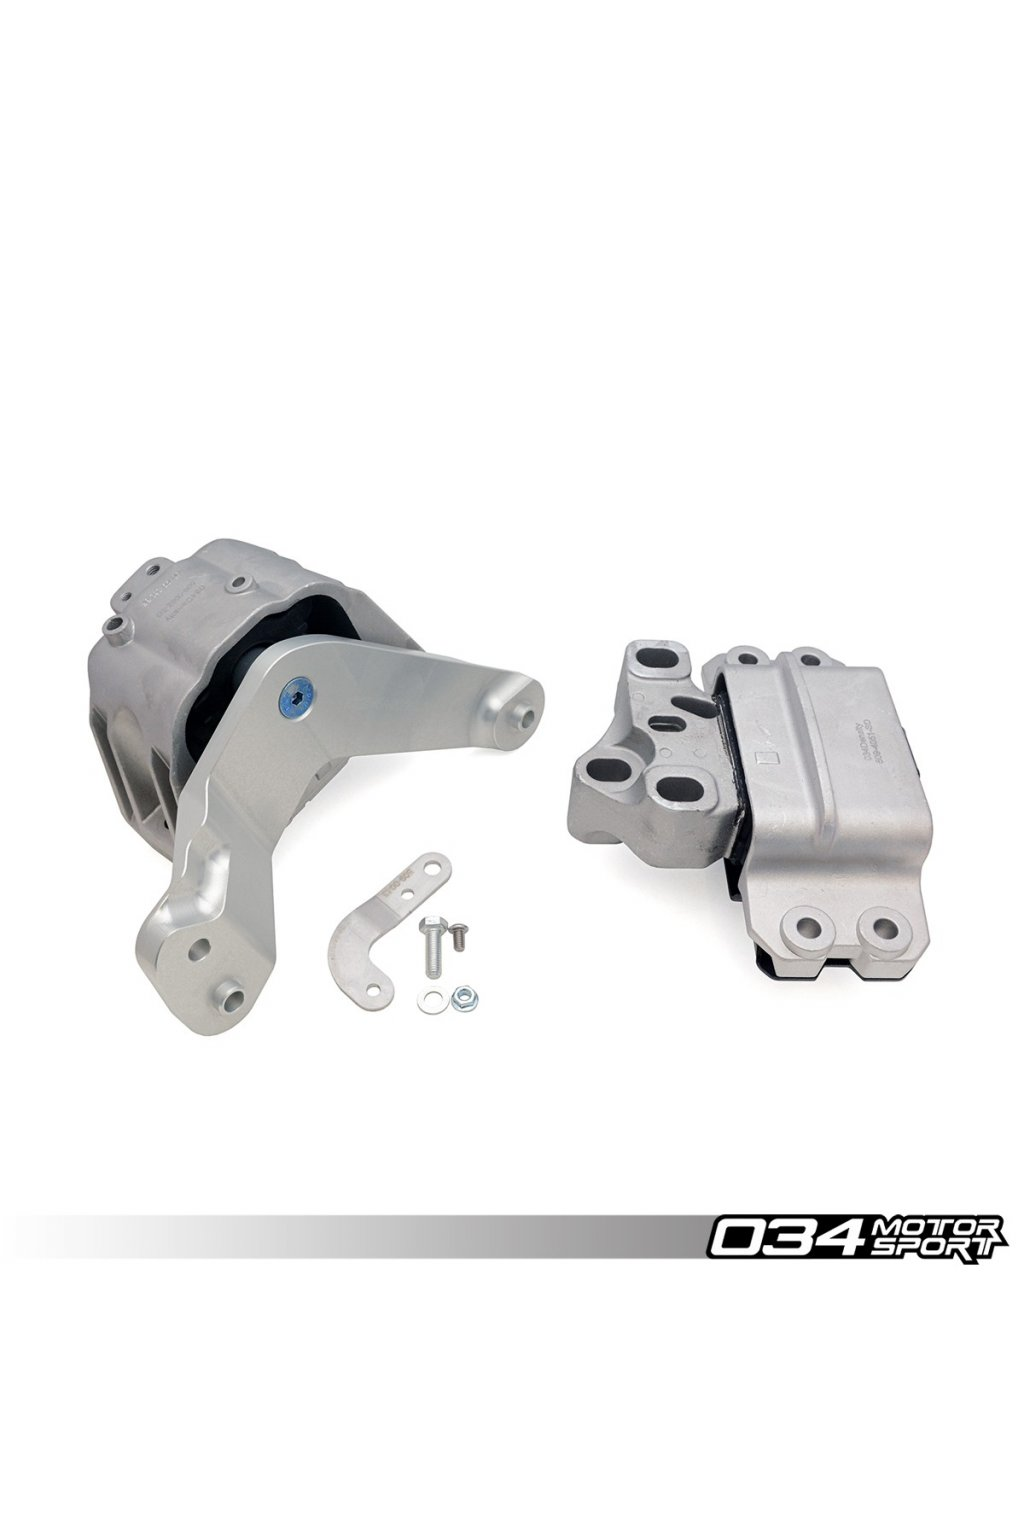 8j audi ttrs 6 speed manual density line engine transmission mount upgrade pair 034 509 5019 sd 1